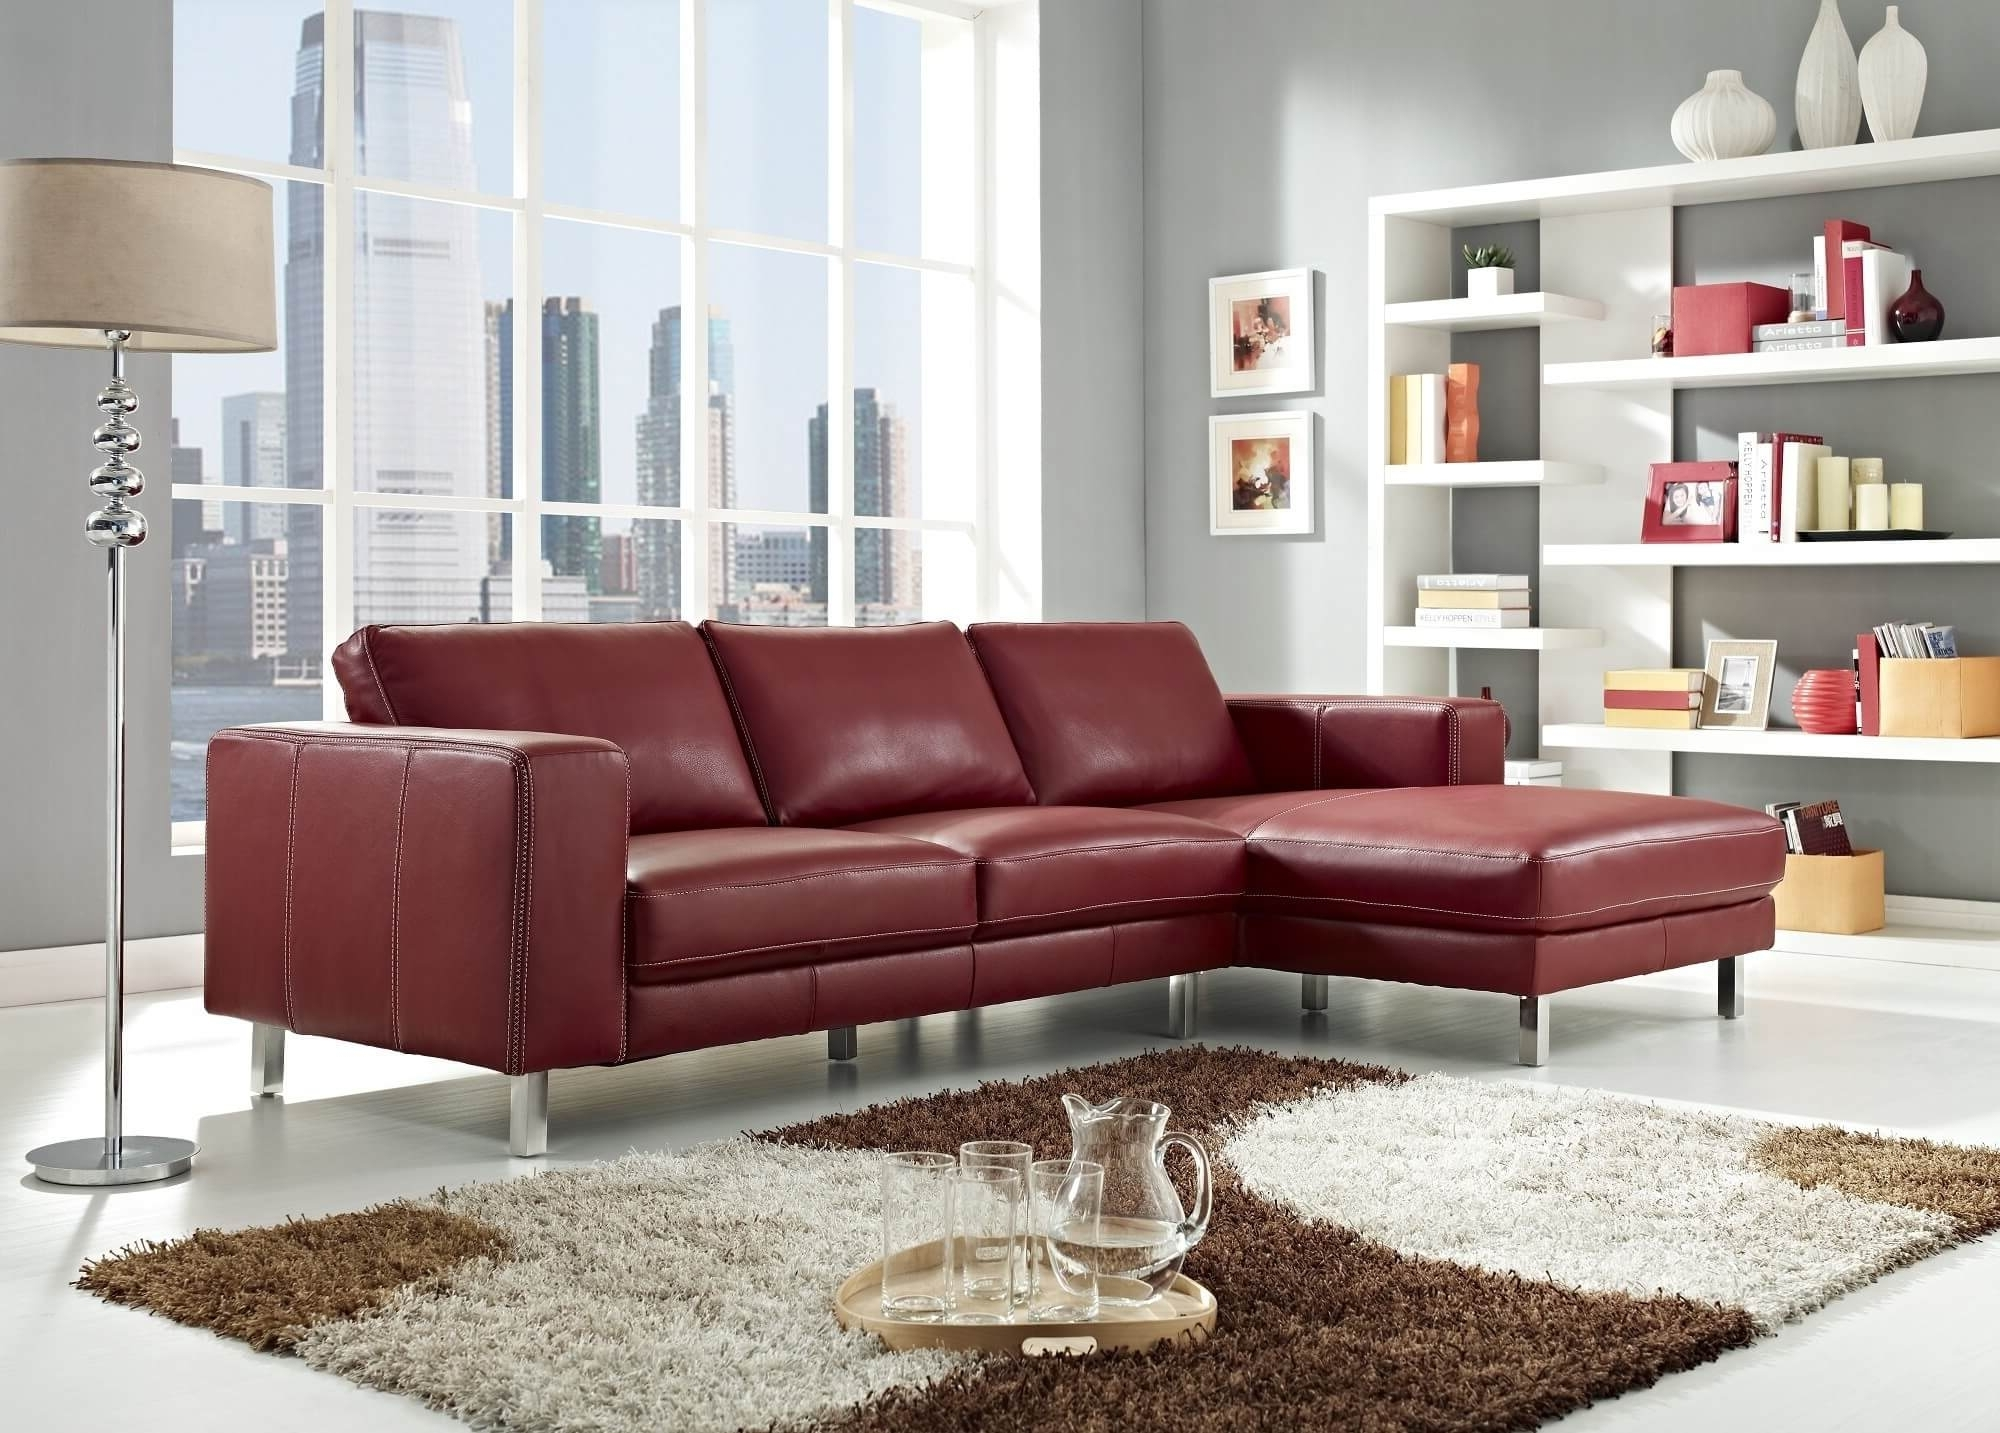 Well Known Stylish Modern Red Sectional Sofas Regarding Red Leather Couches For Living Room (View 5 of 15)